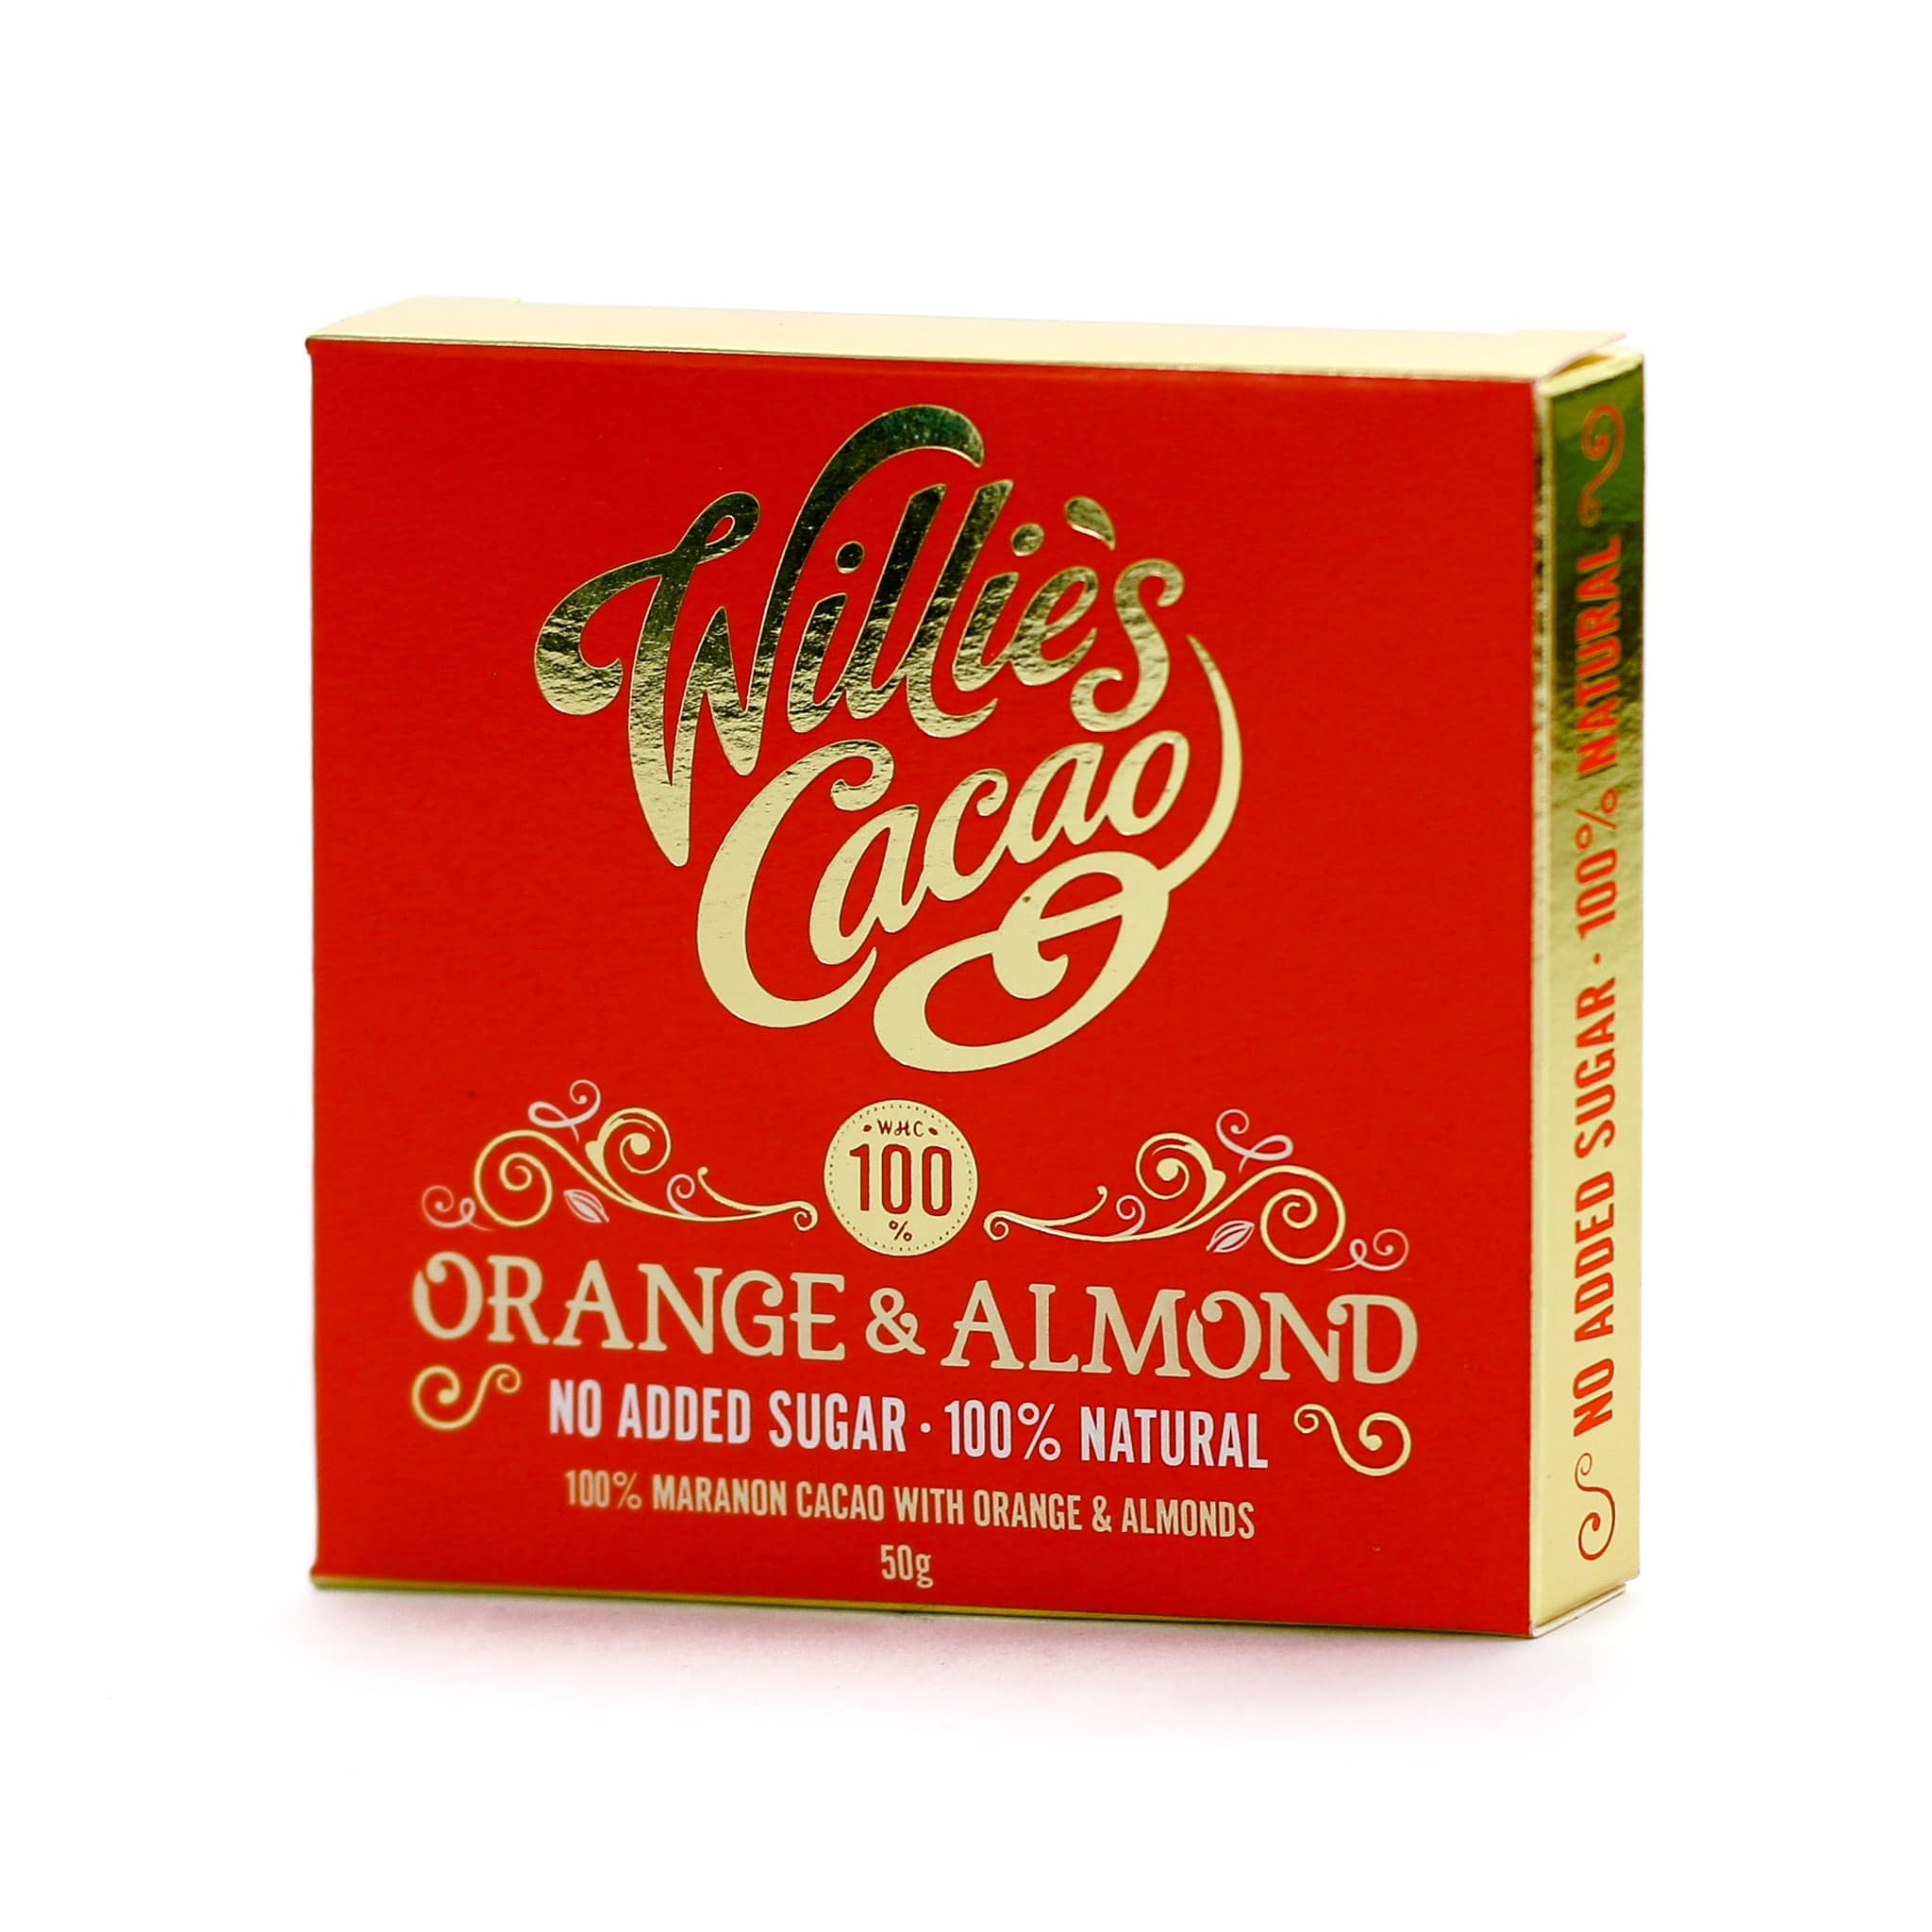 Willie's Cacao Orange & Almond 100% Dark Chocolate 50g